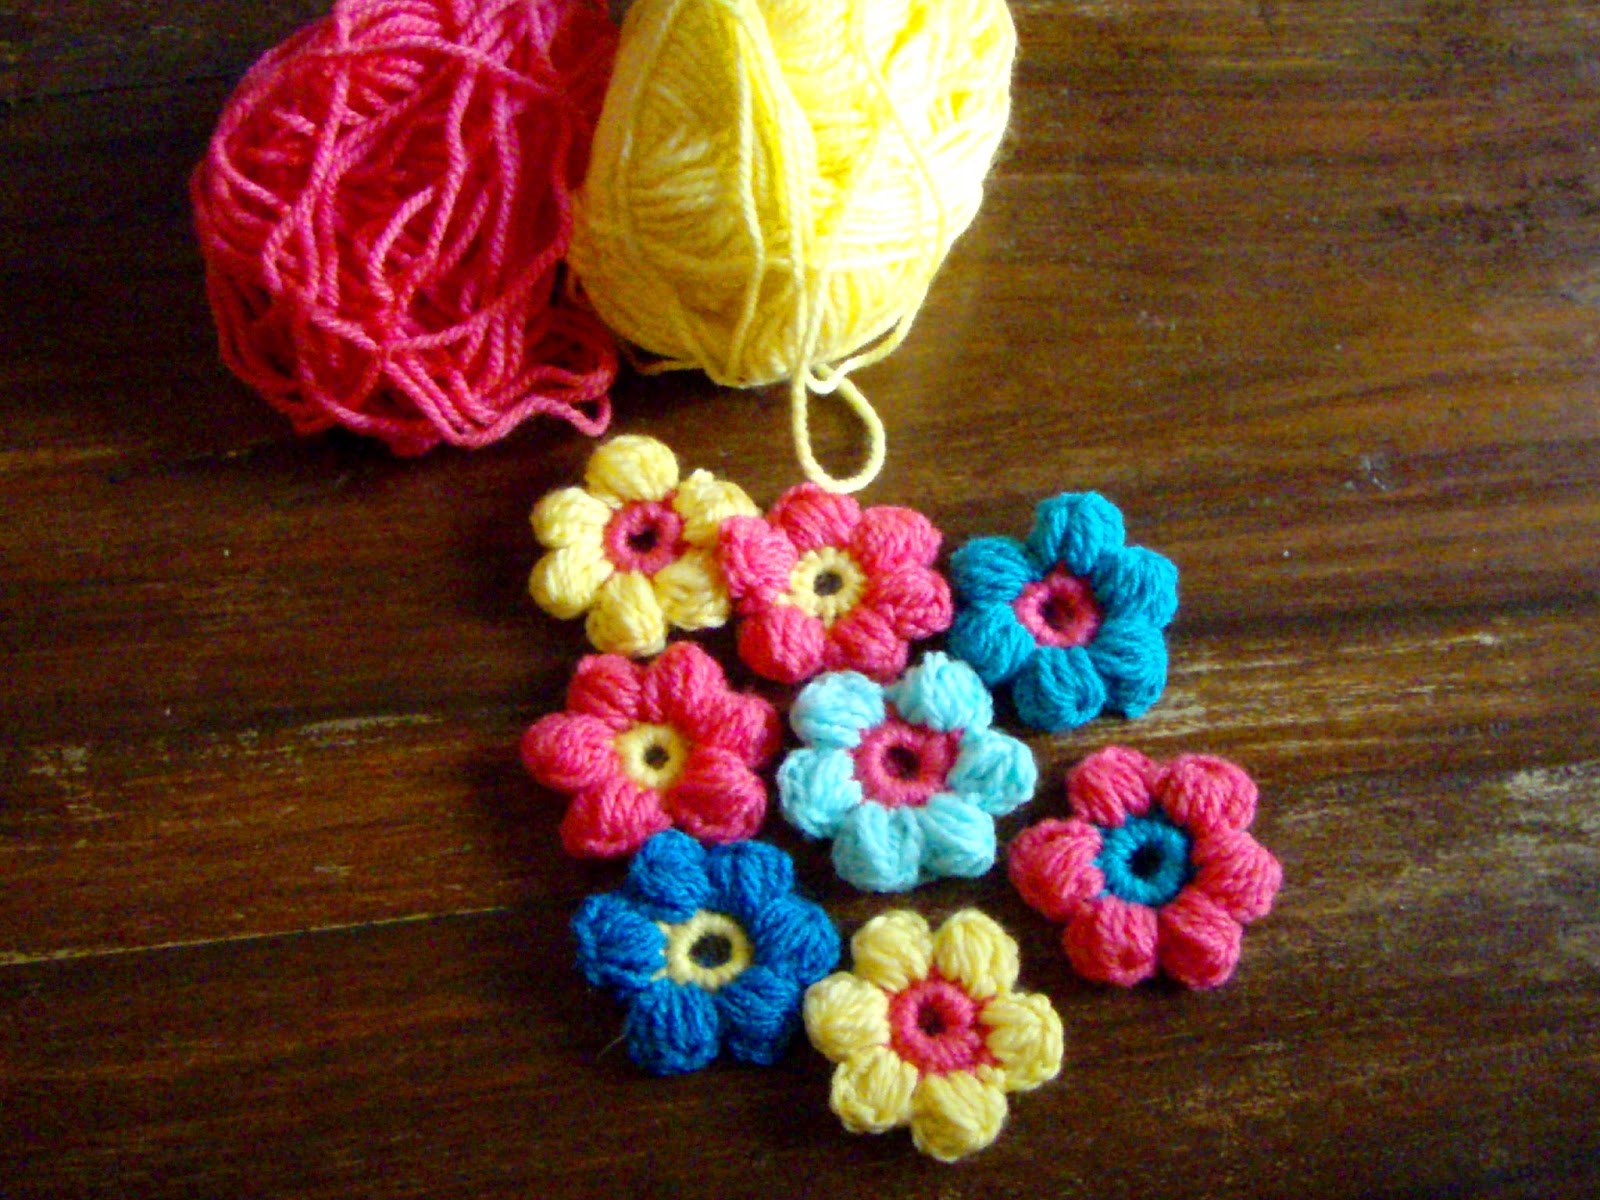 Crochet Flower Puff Pattern : a lovely mess: crochet flowers